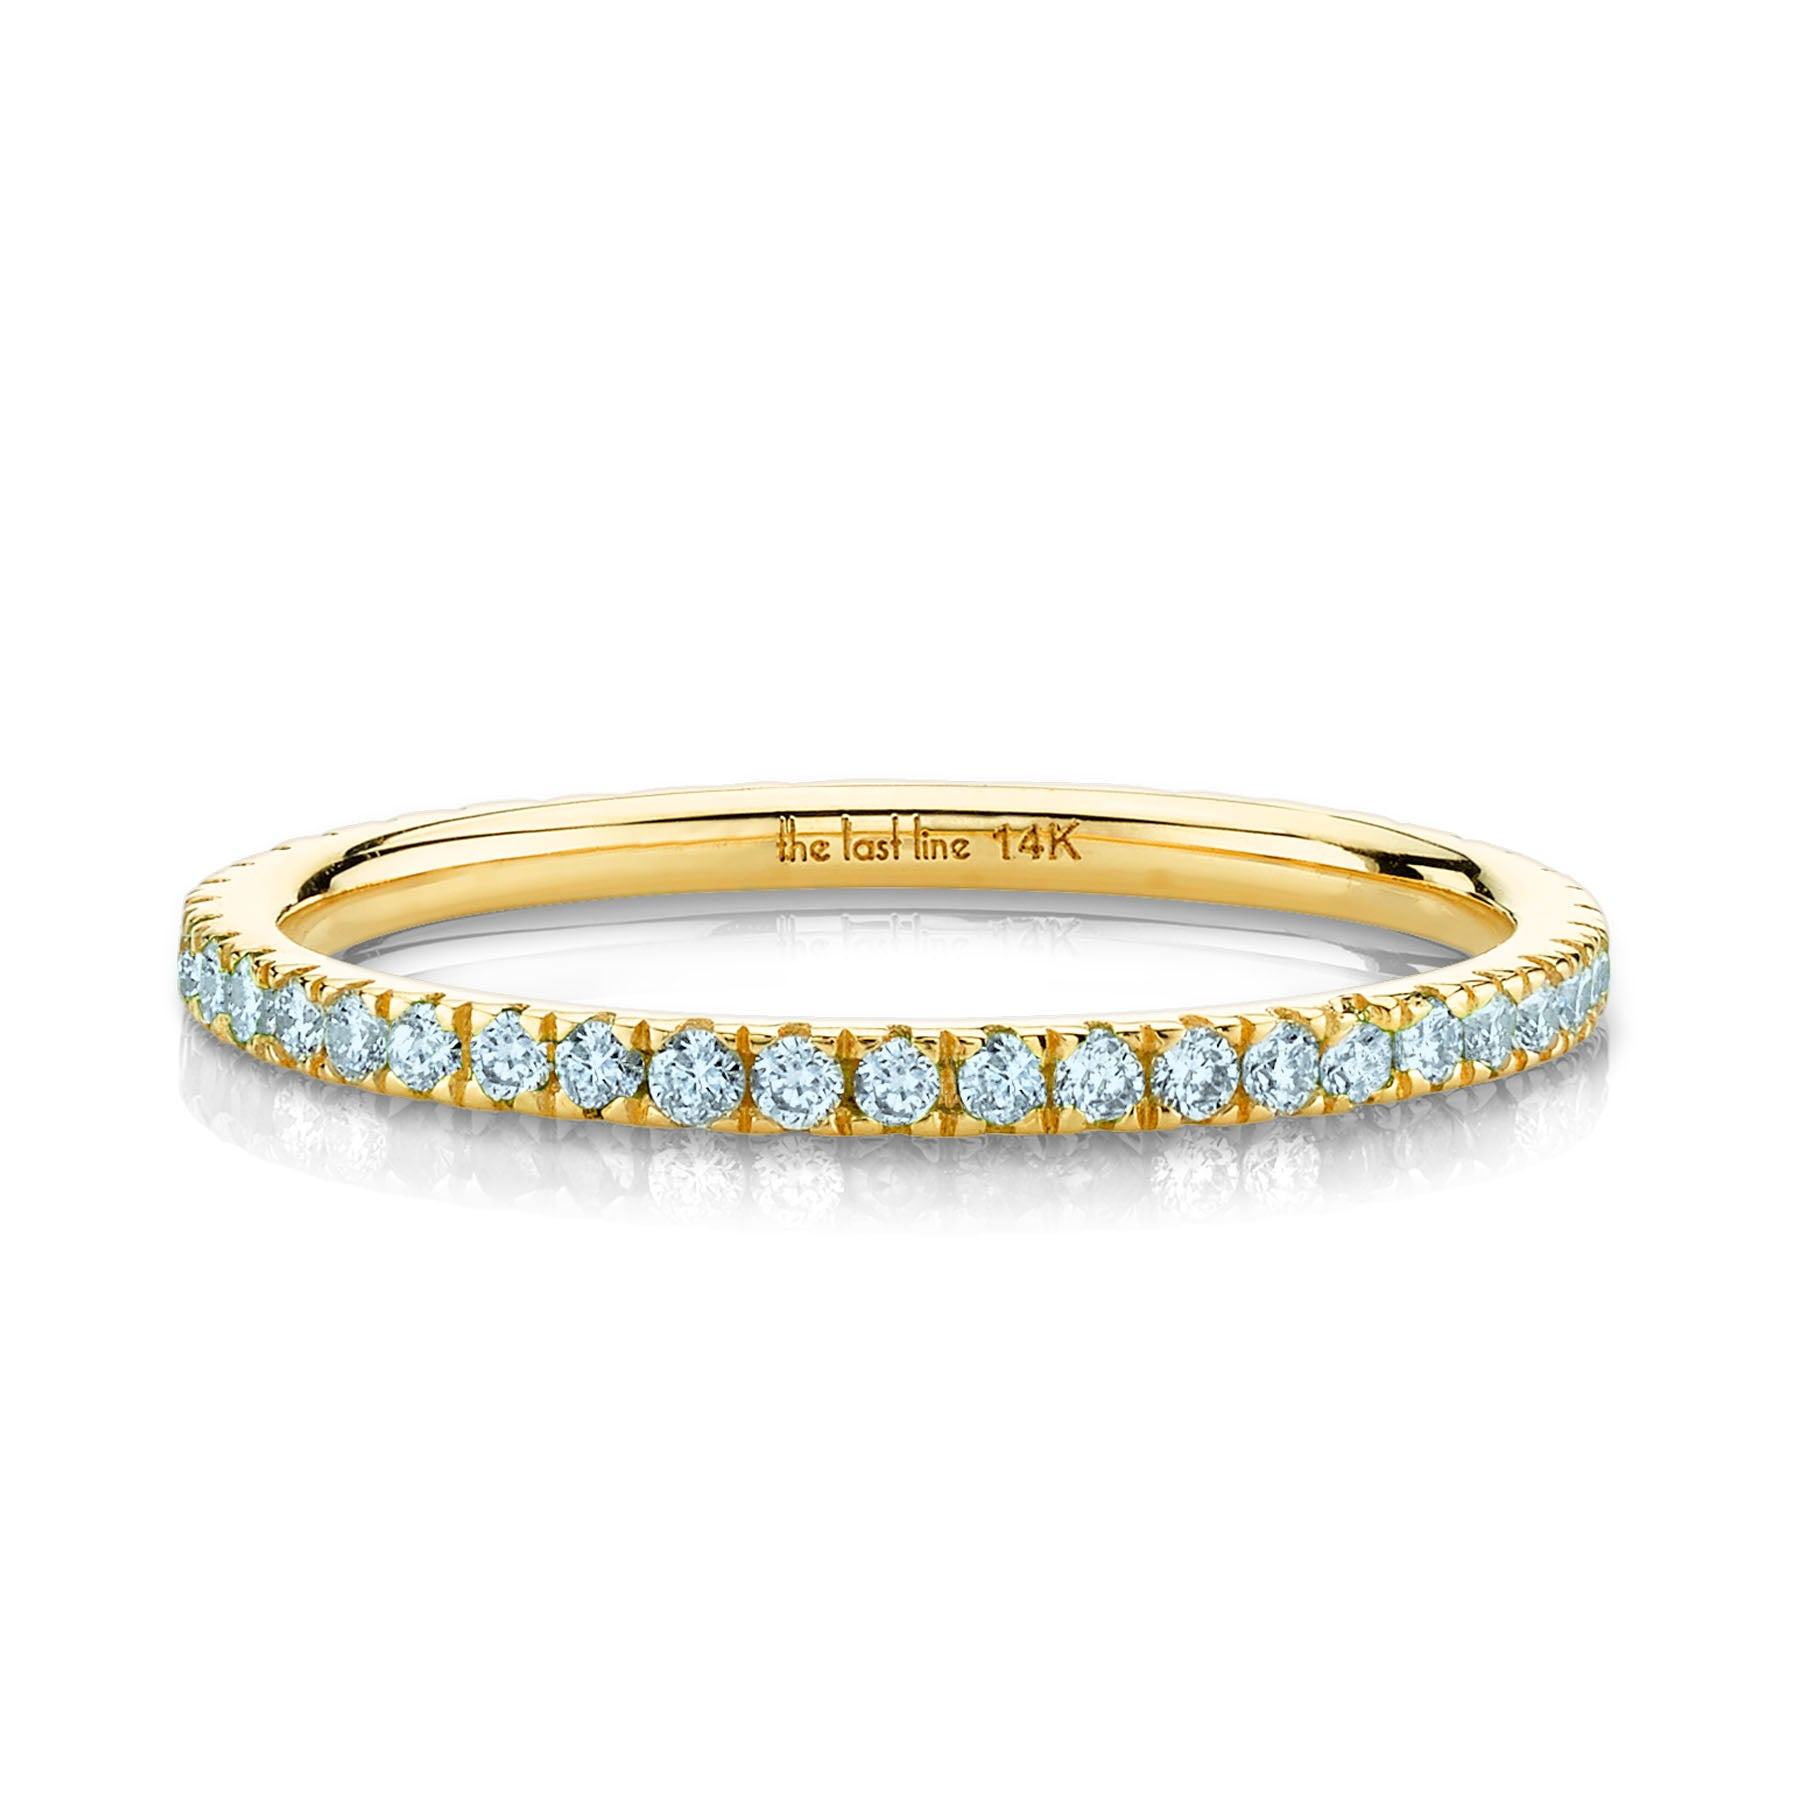 PERFECT AQUAMARINE ETERNITY BAND